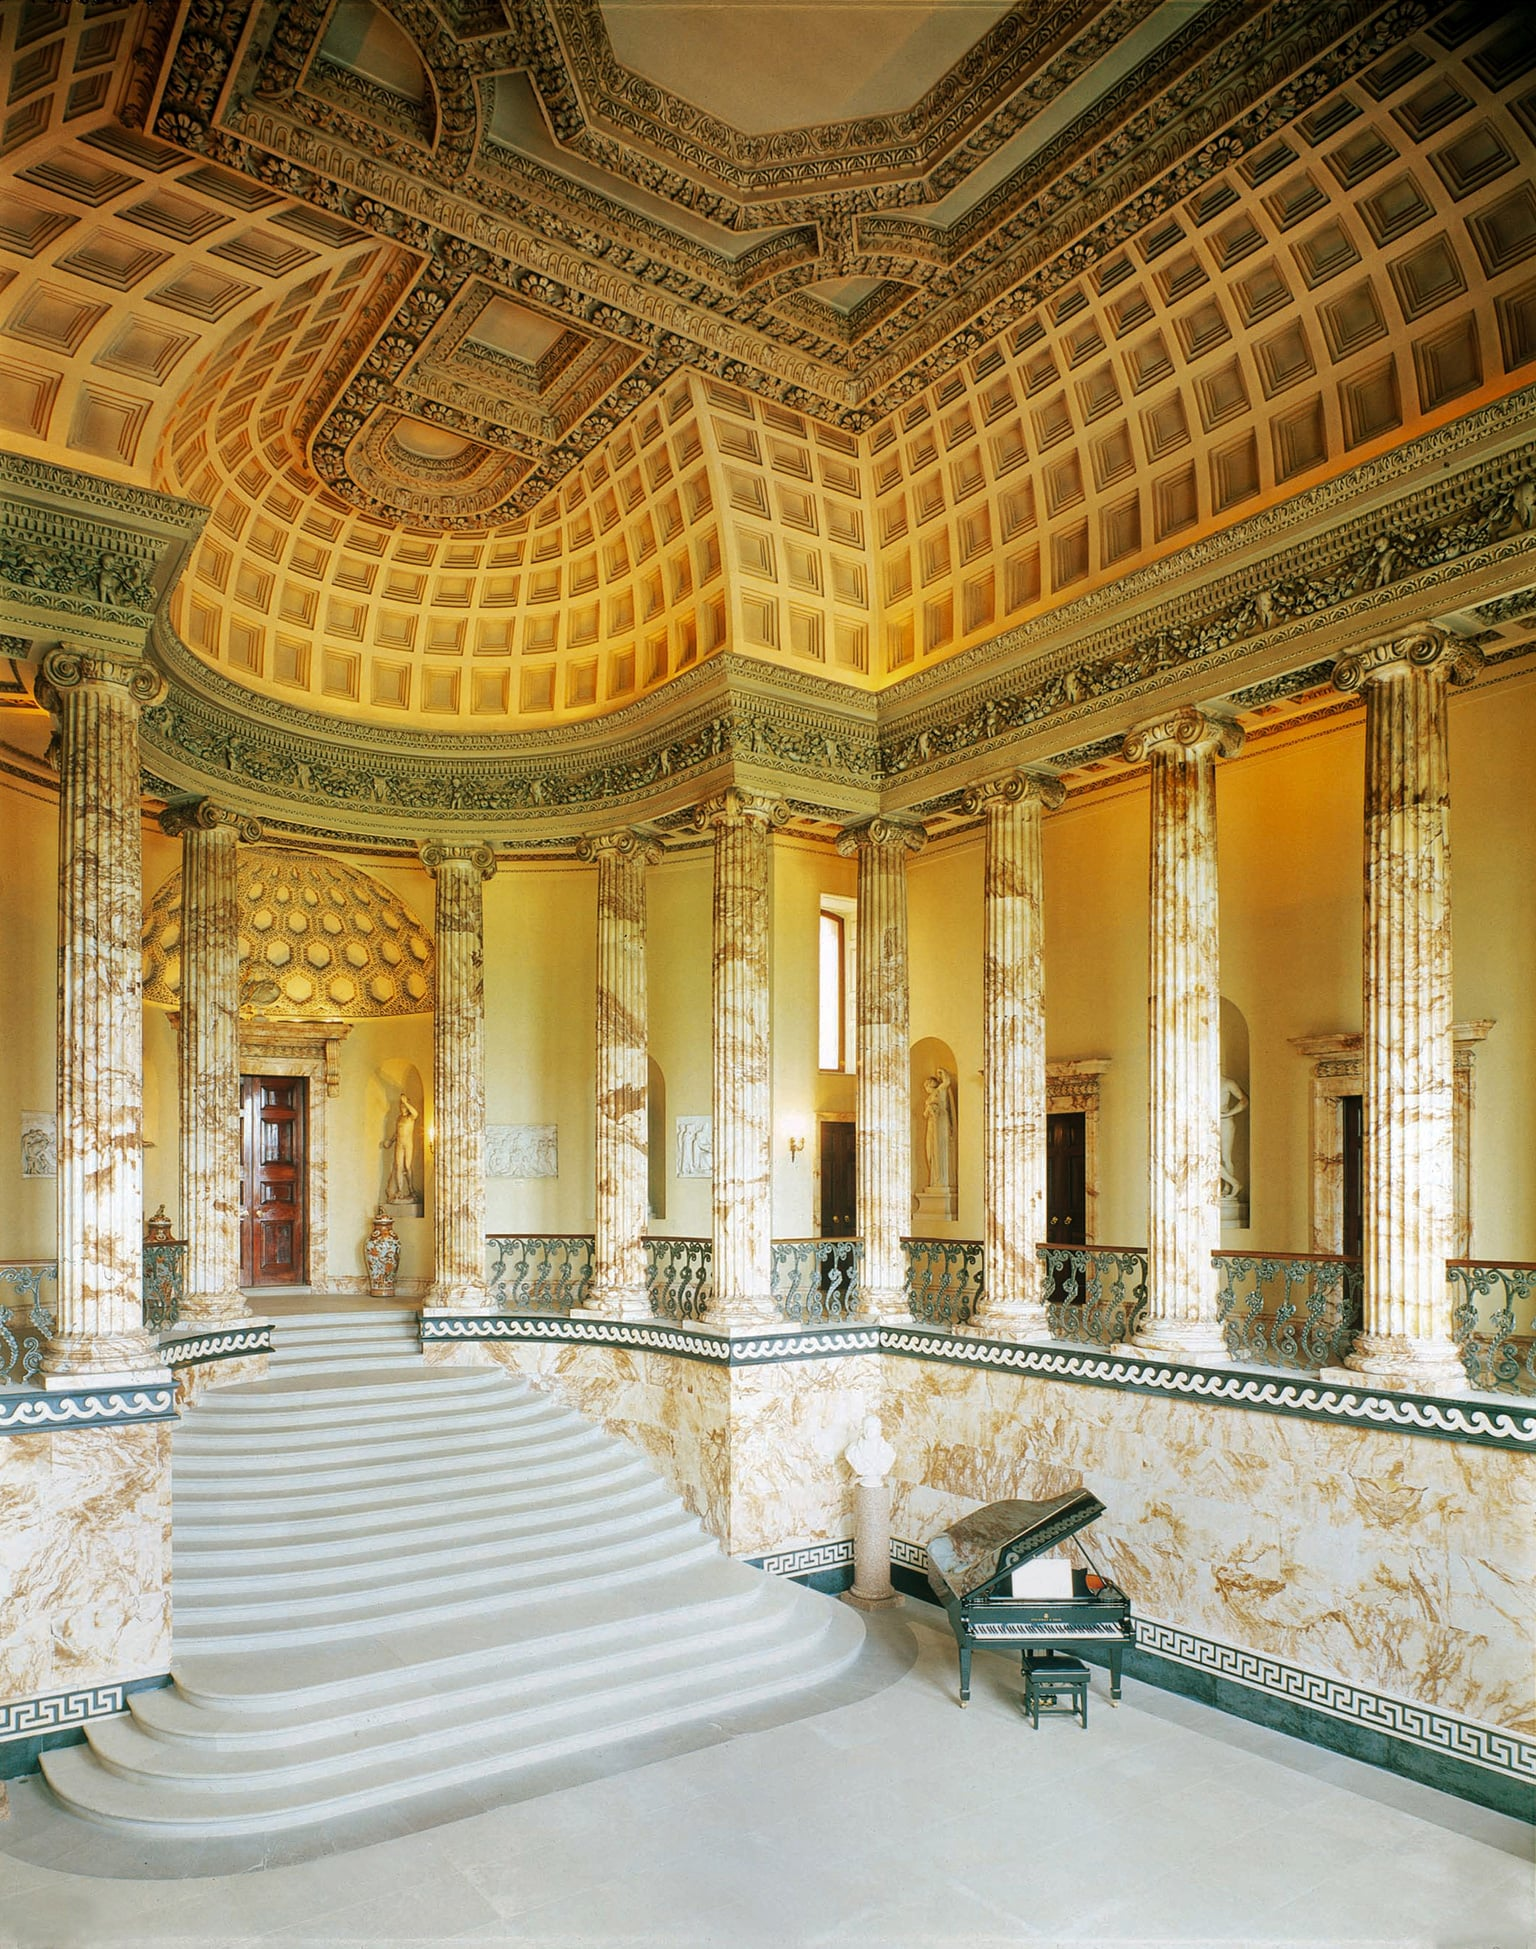 The marble hall is largely constructed of Derbyshire alabaster